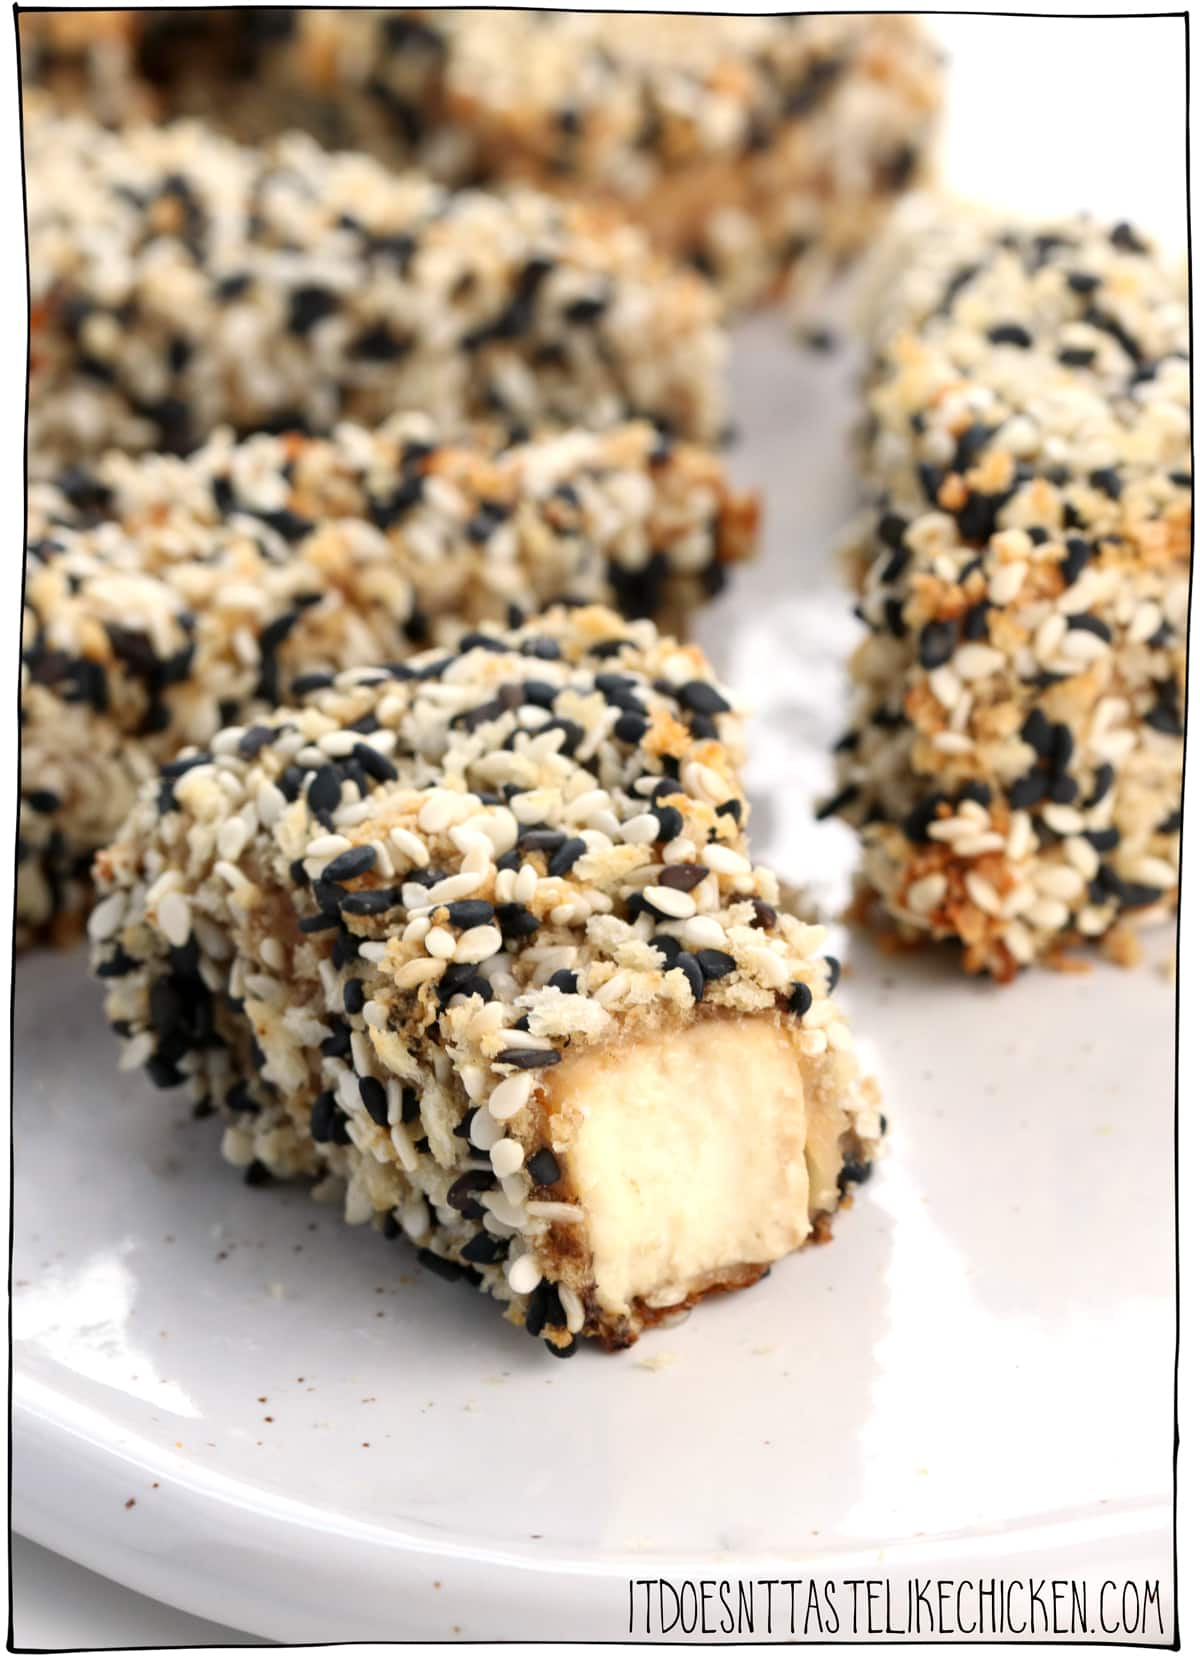 Crispy Sesame Crusted Tofu! Marinated tofu in a crispy crunch sesame crust. Great for a vegan appetizer or as a main dish served with your favourite sides. Gluten-free and oil-free options. #itdoesnttastelikechicken #veganrecipe #tofu